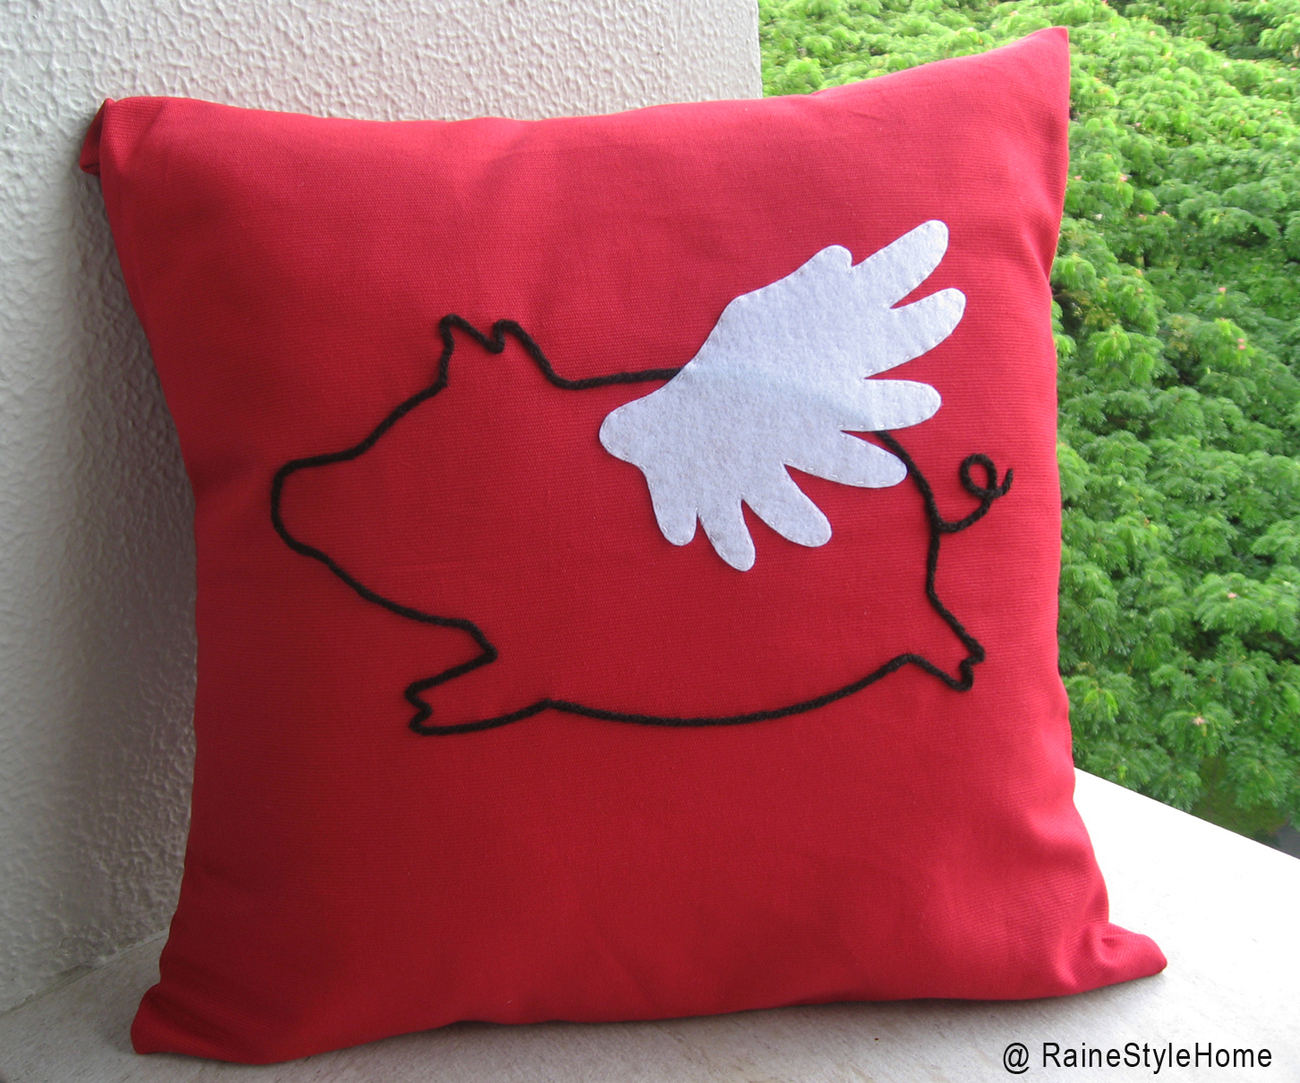 When Rabbit Flys In Spring. Dreaming. Lavender Pillow Cover